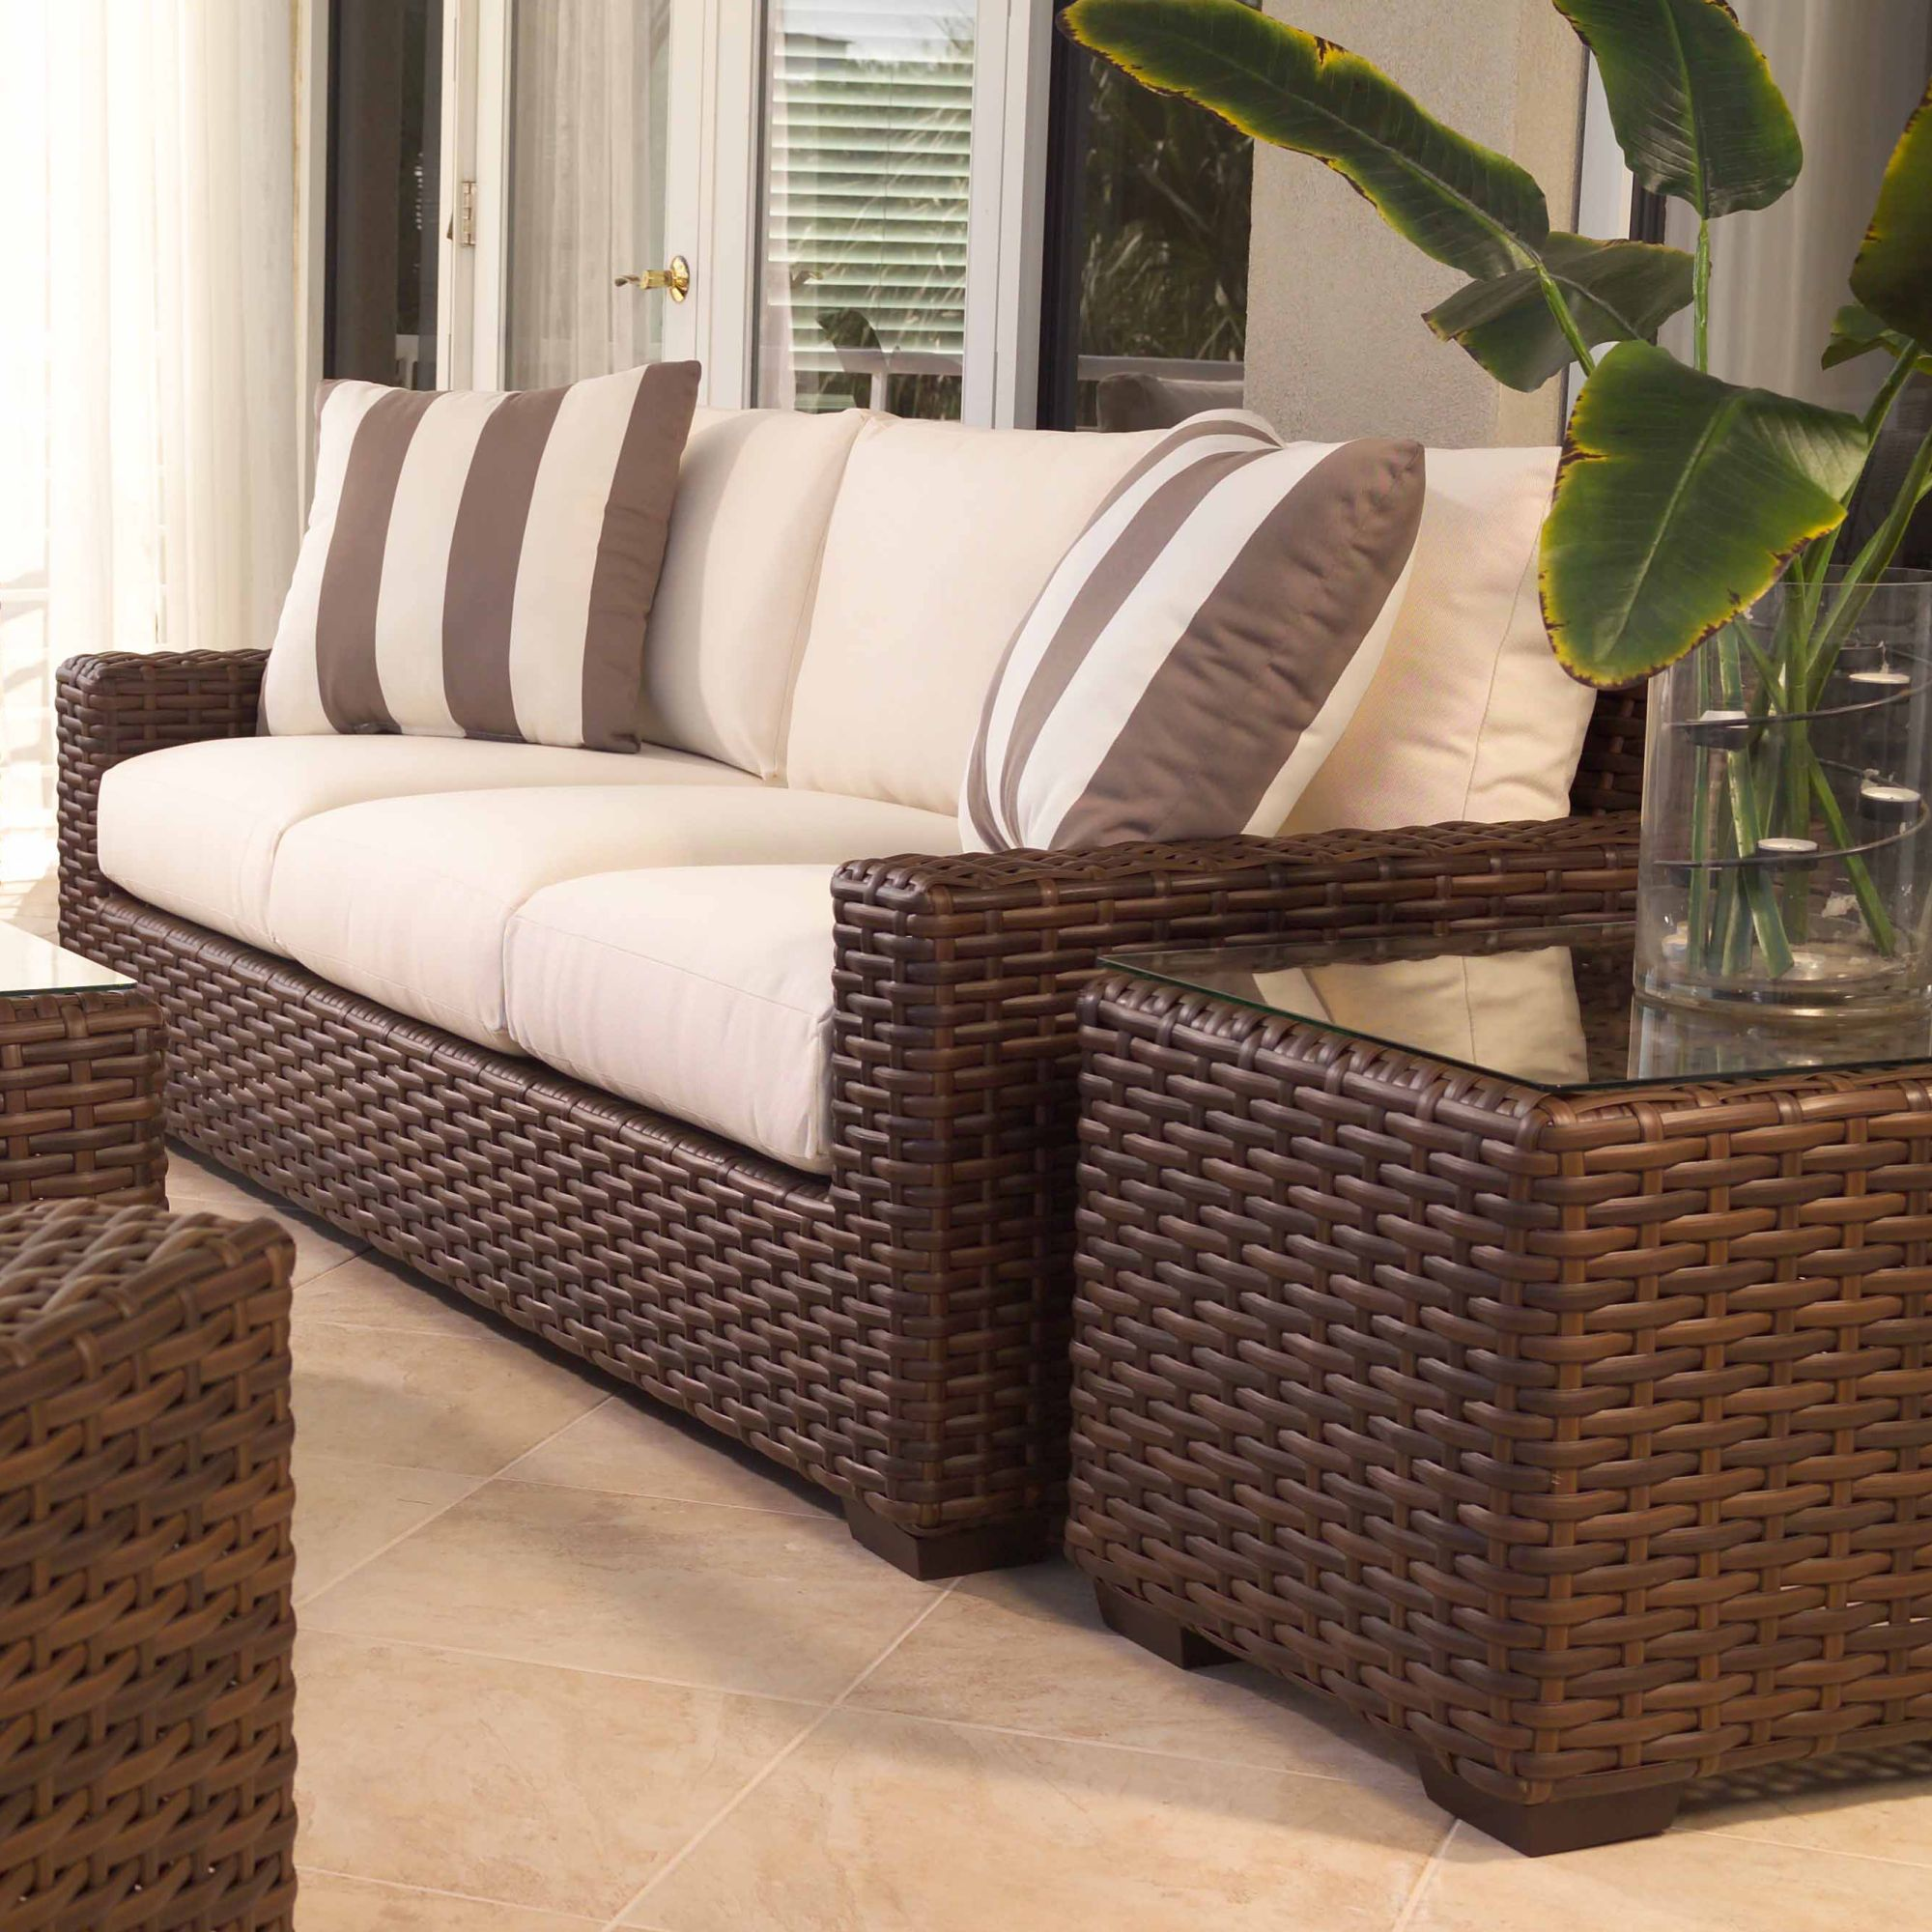 Contempo Sofa Available At The Patio 4026 Dowlen Beaumont